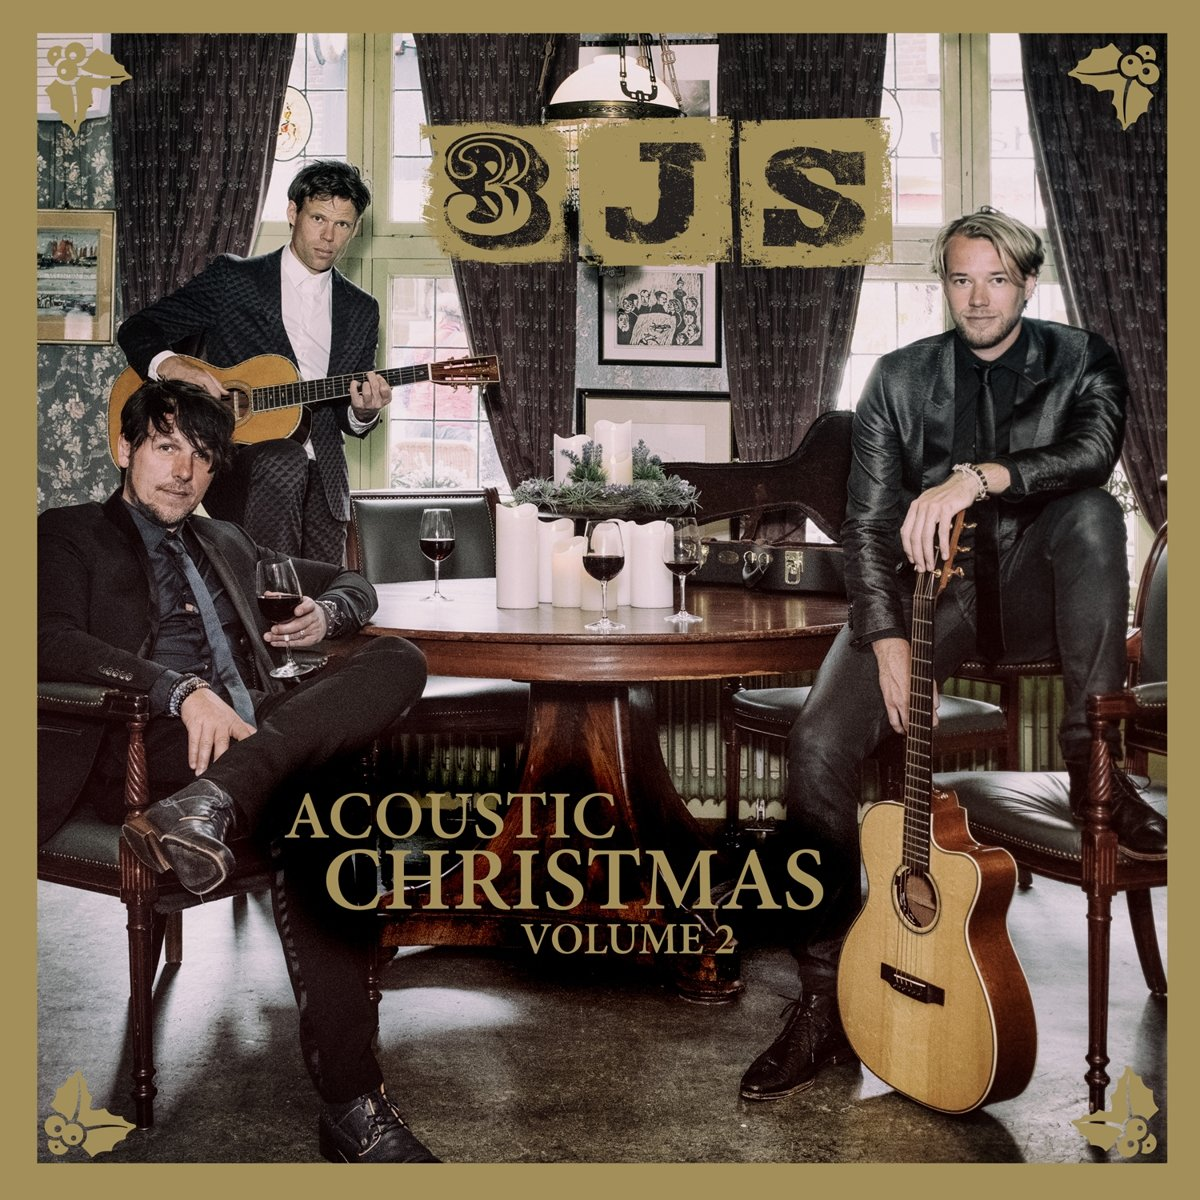 3js - ACOUSTIC CHRISTMAS VOLUME 2 kopen